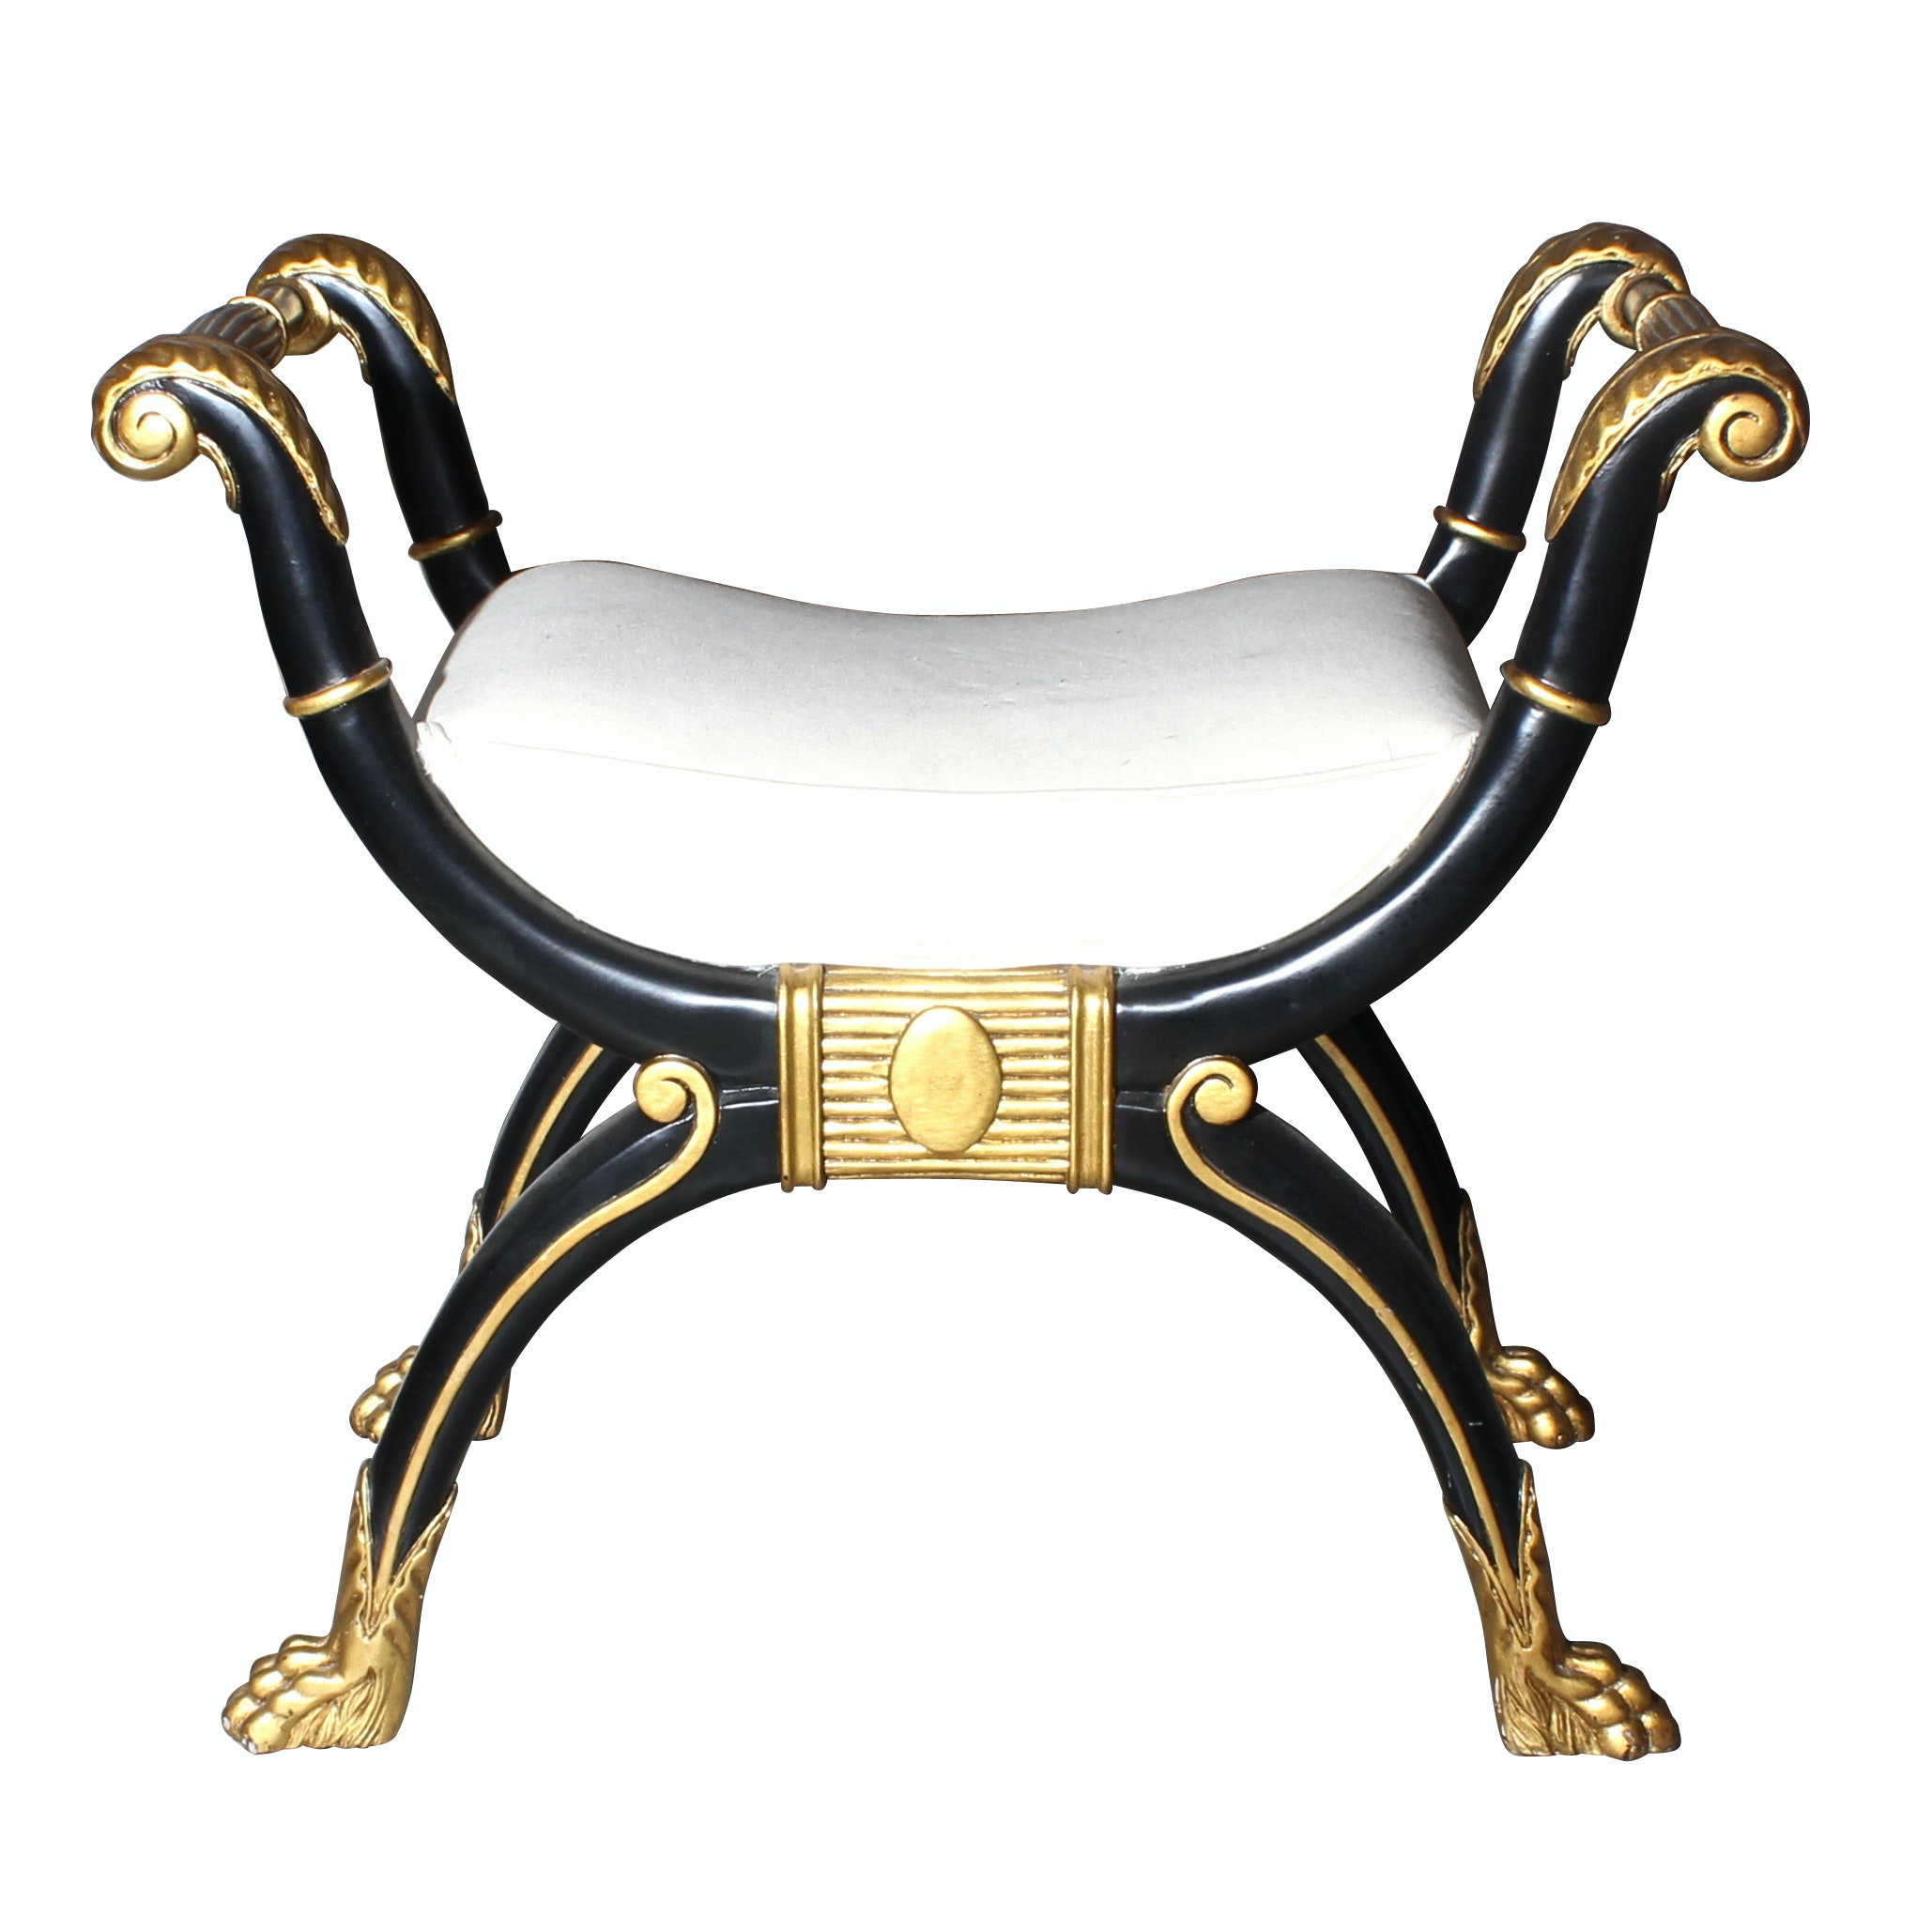 Neoclassical Style Ornate Vanity Bench